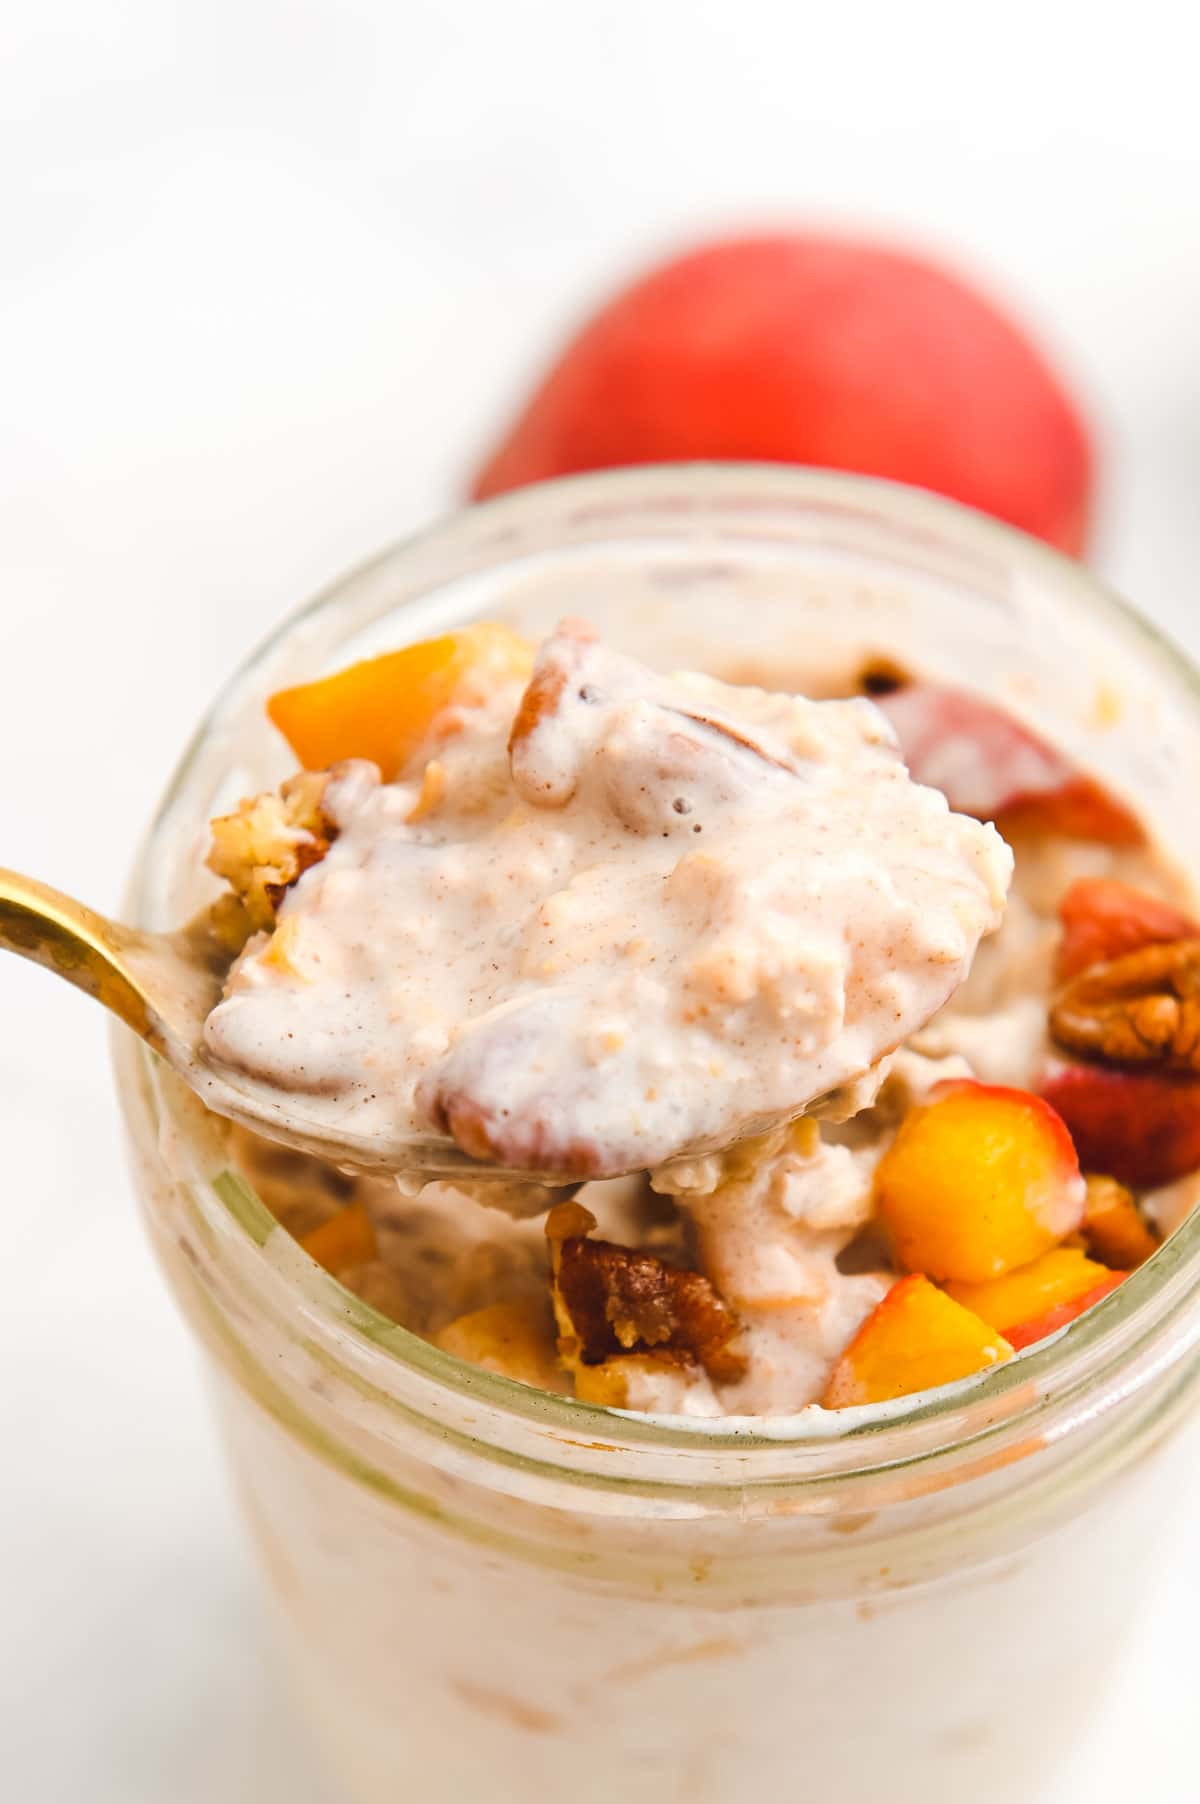 Gold spoon lifting a bite of overnight oats out of a glass jar